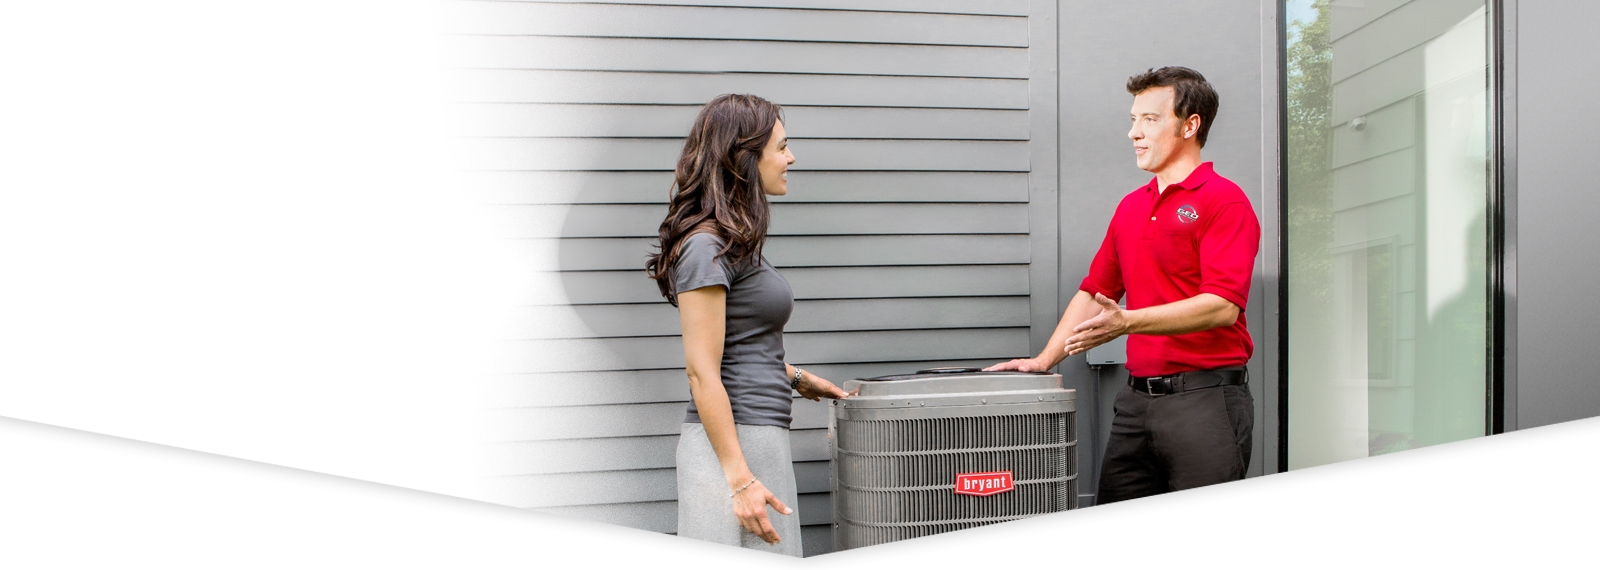 We'll respond quickly with the experience and expertise to repair your AC unit fast.